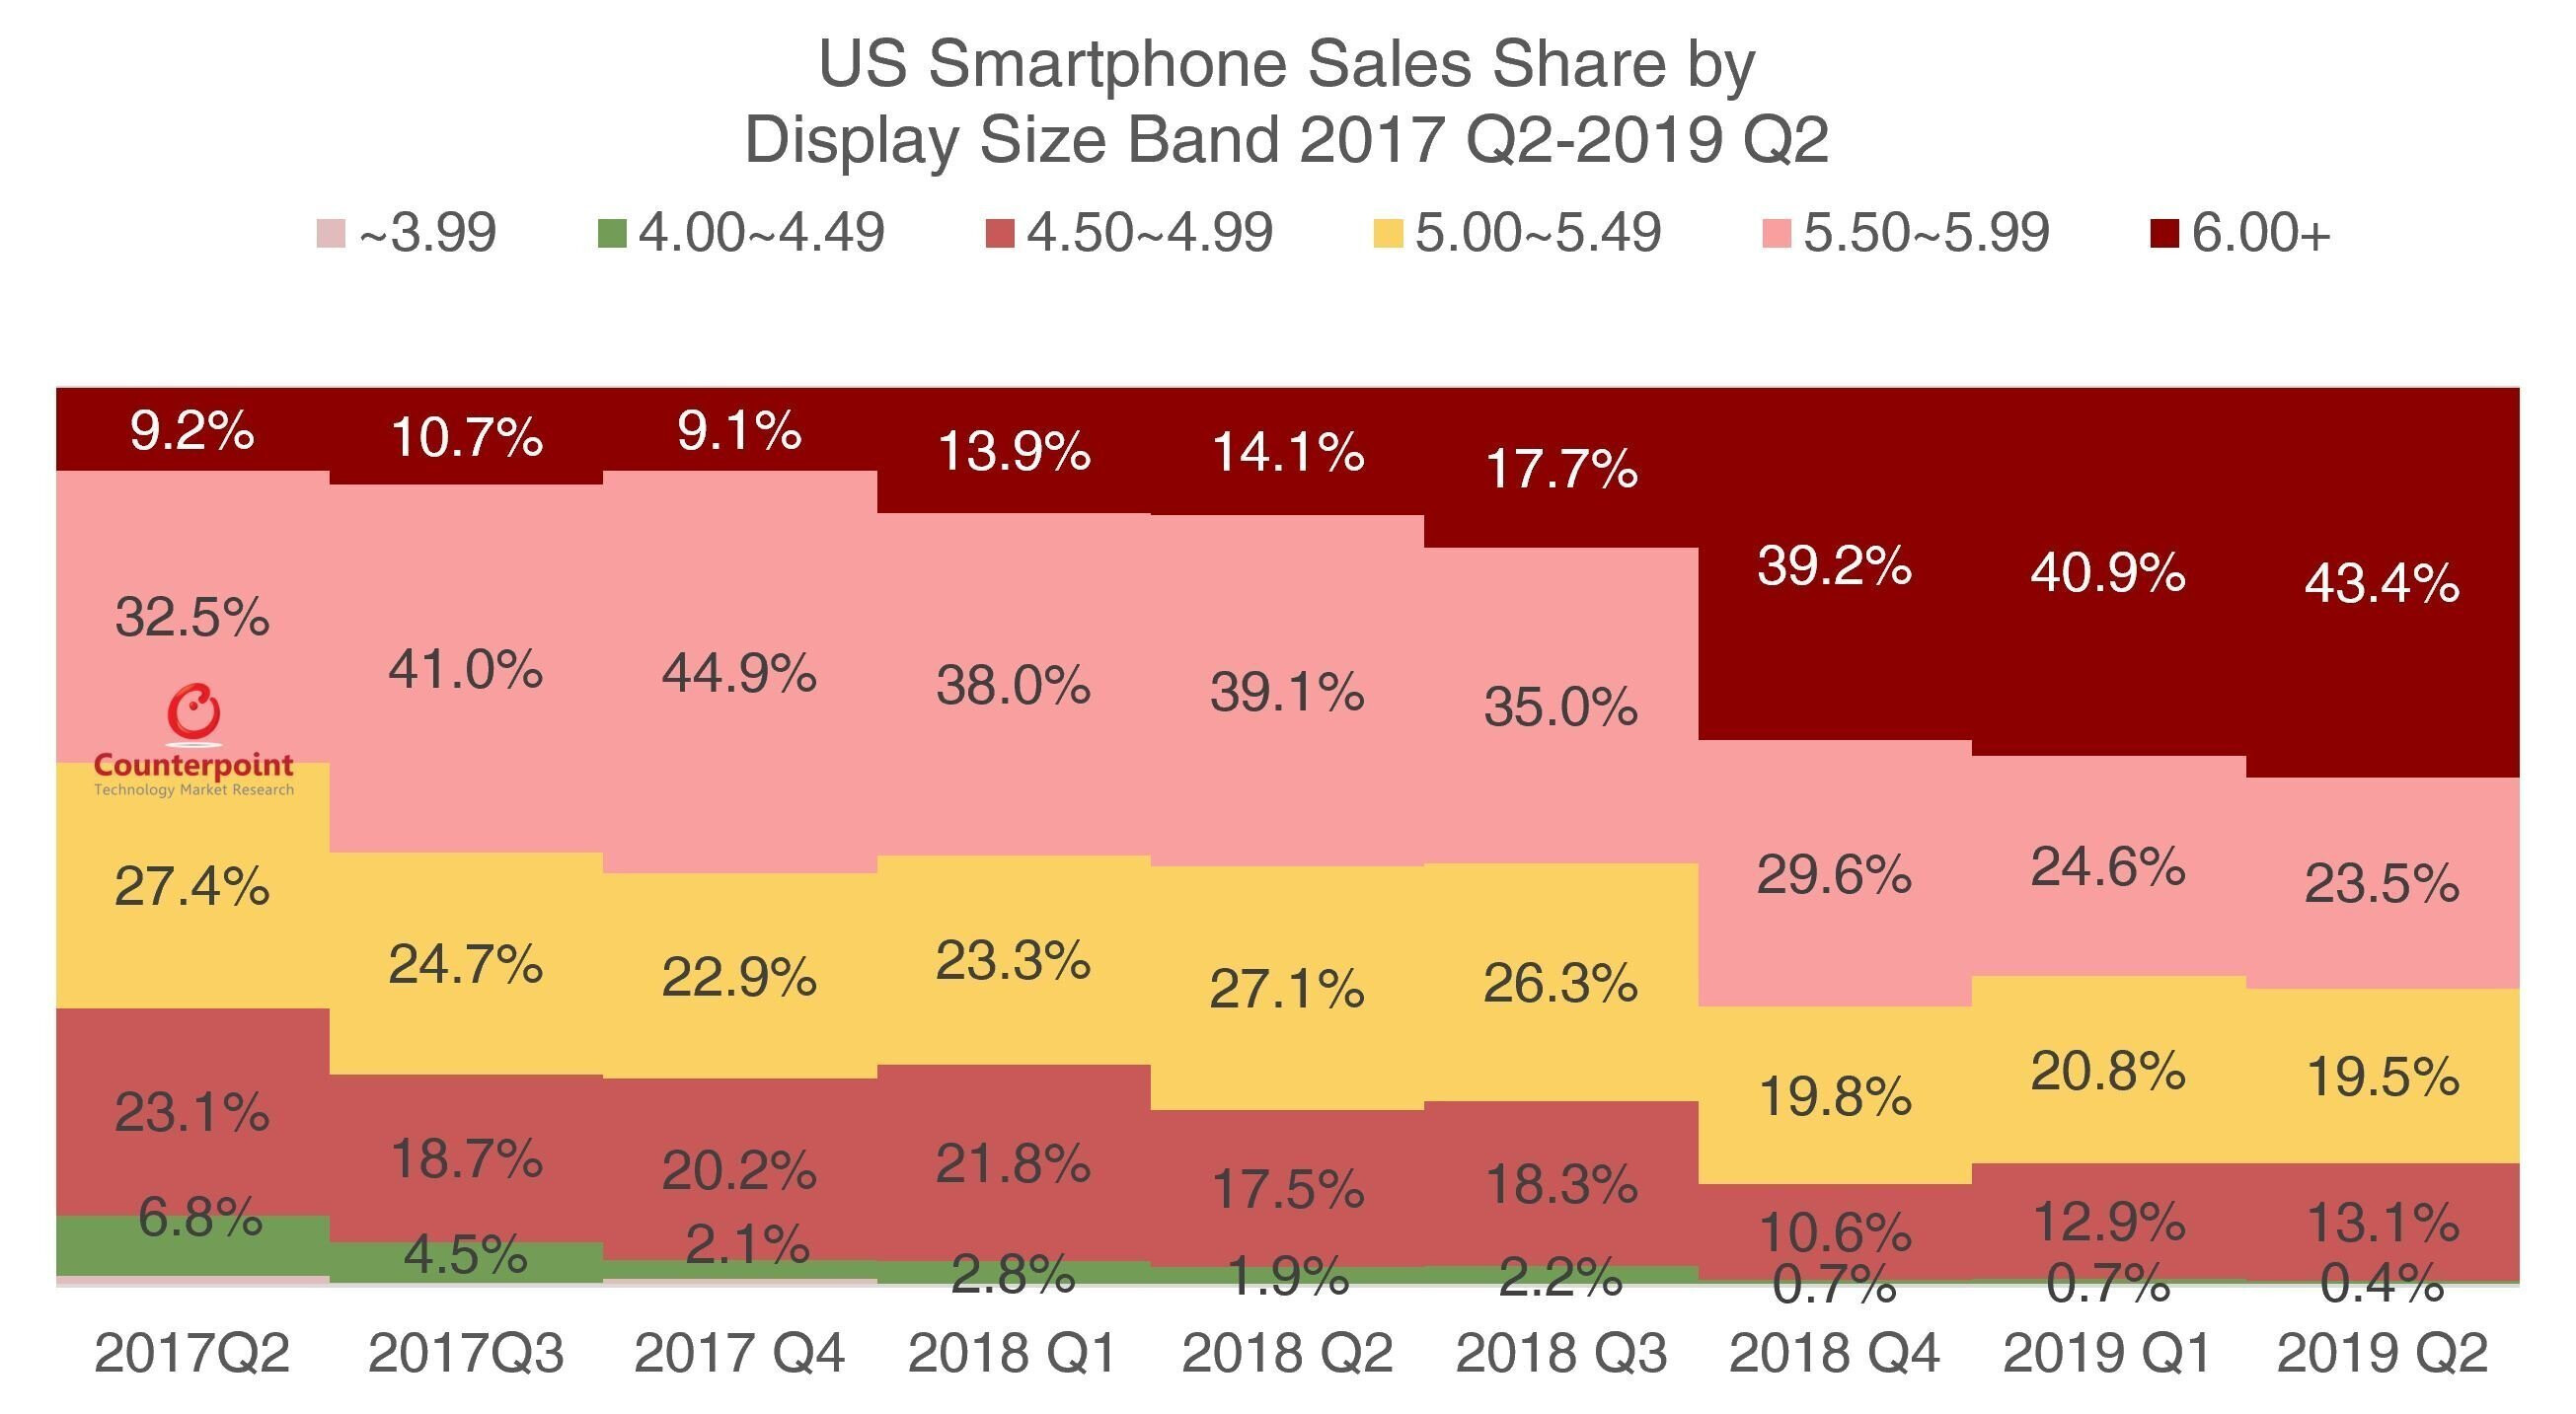 OnePlus and Google's value pricing lead to strong Q2 growth